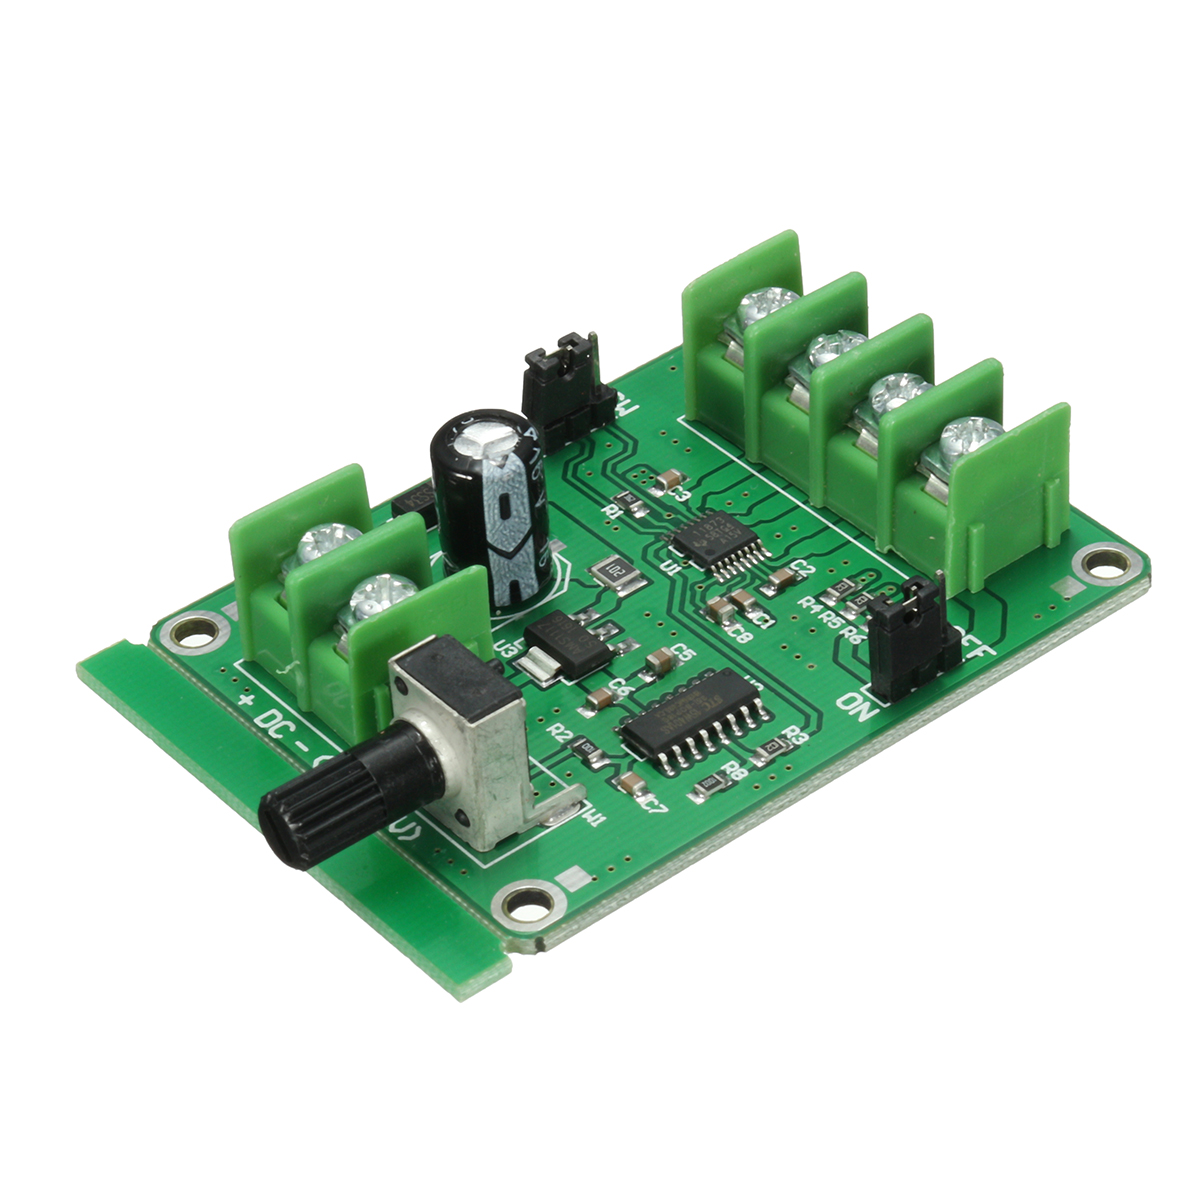 Nail Board Wiring Diagrams For Dummies 3pcs 5v 12v Dc Brushless Motor Driver Controller Harness